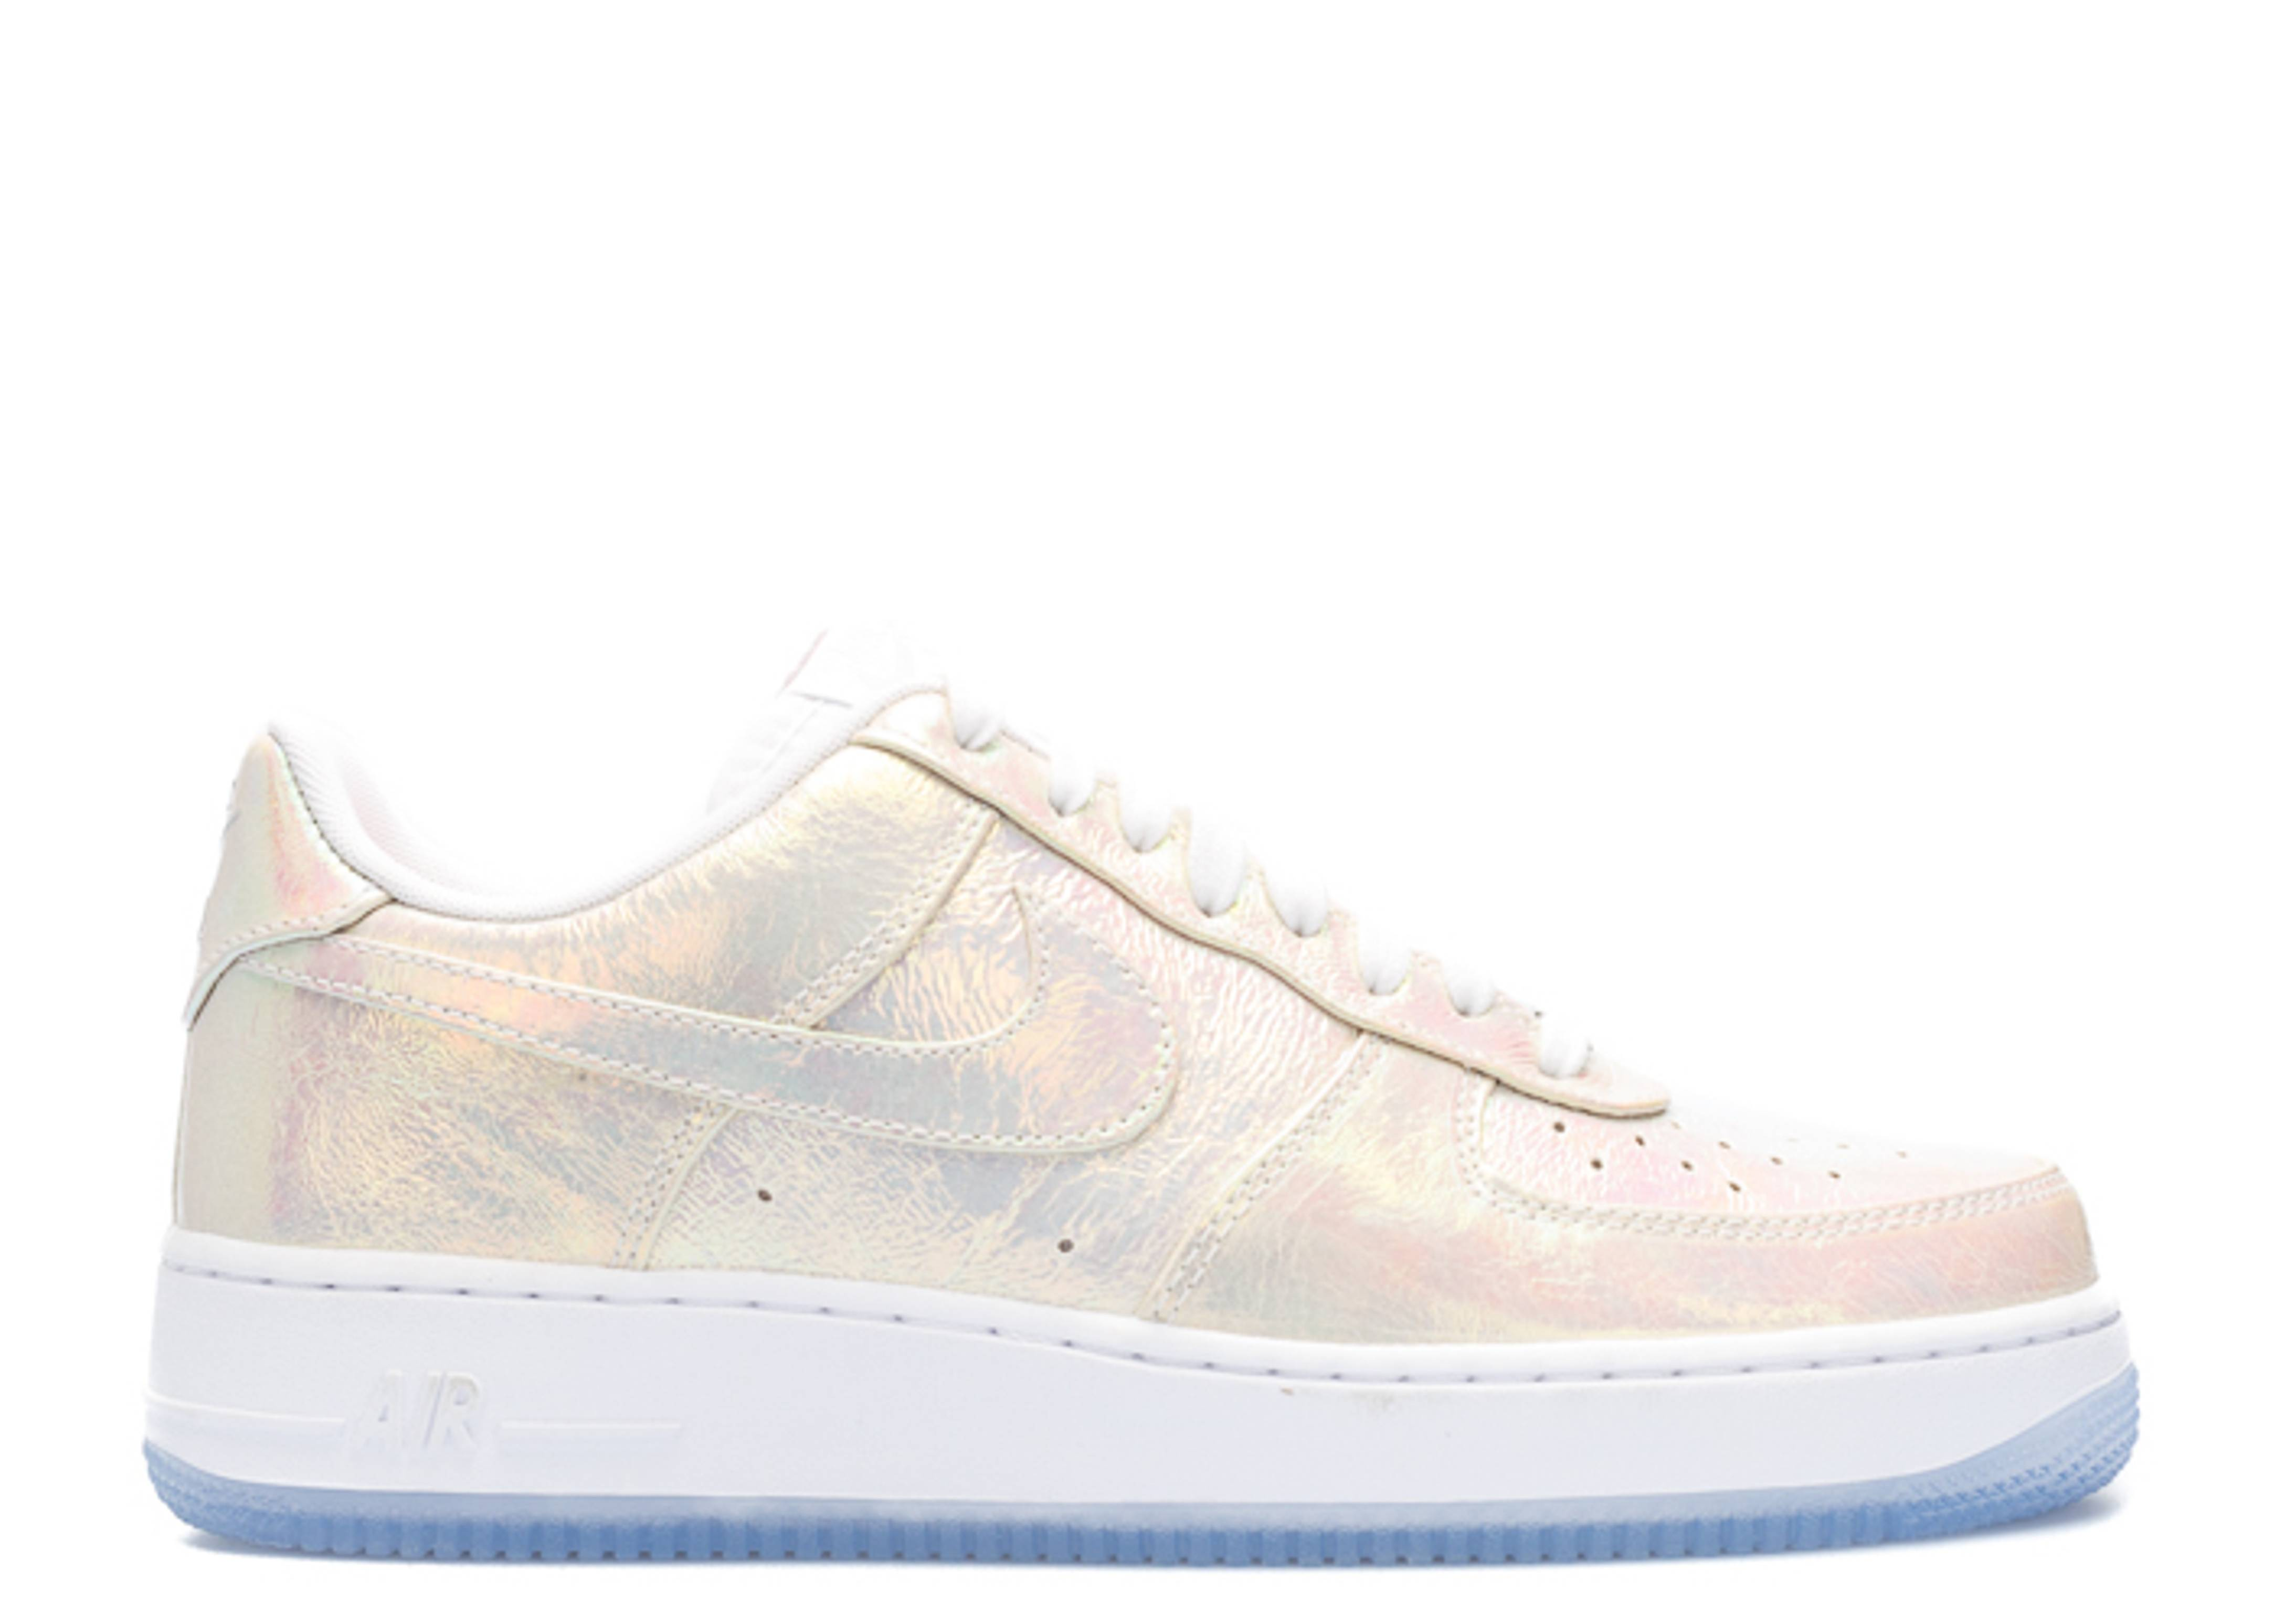 "w's air force 1 low 07 prm qs ""iridescent"""